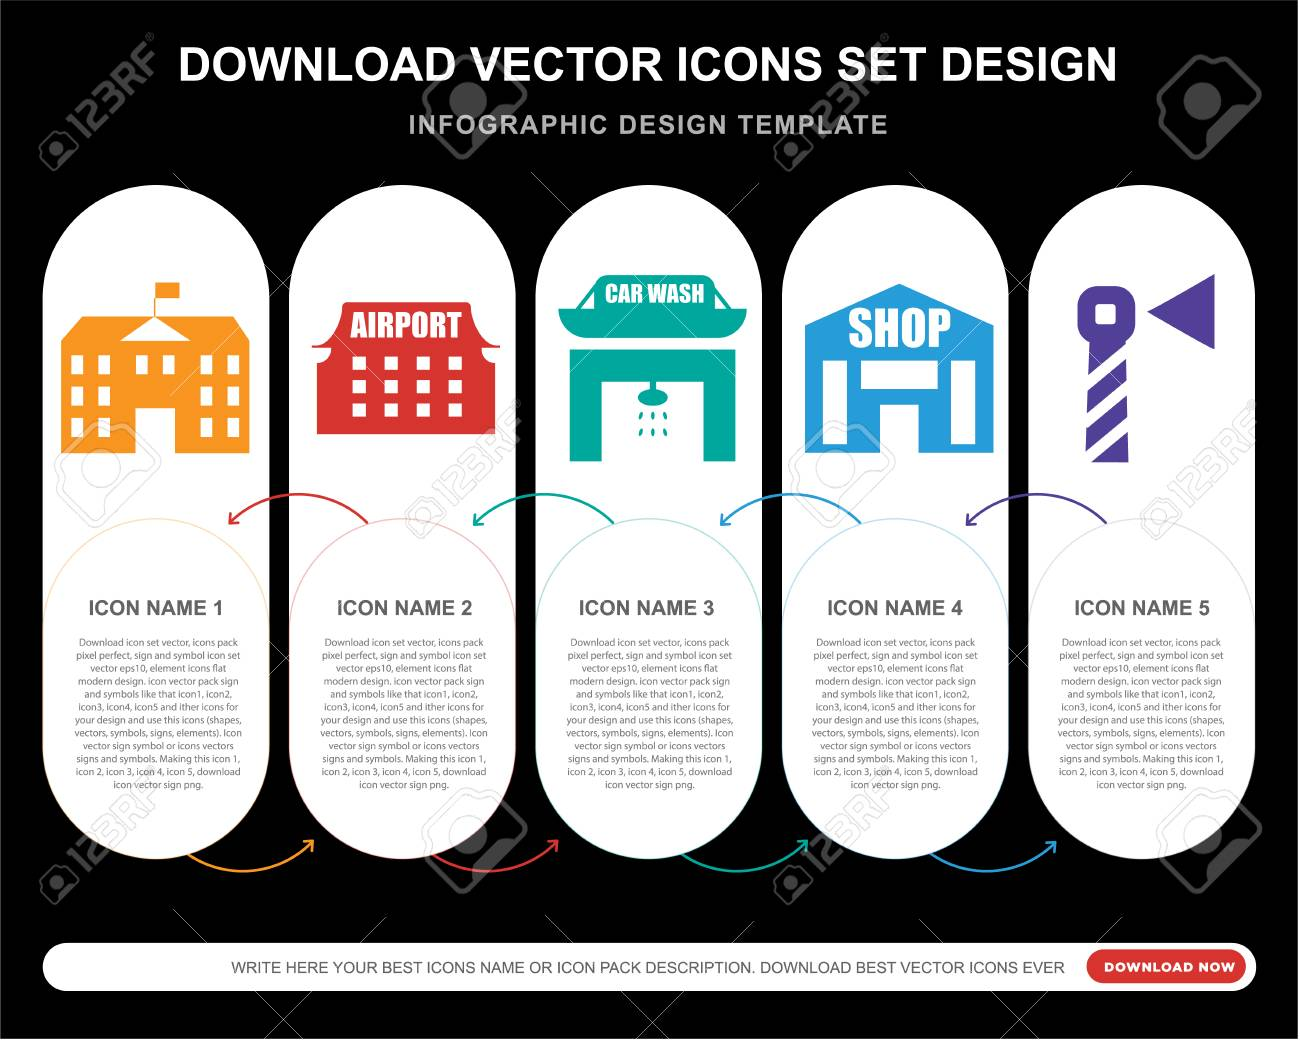 5 vector icons such as School, Airport, Car wash, Building, Lighthouse